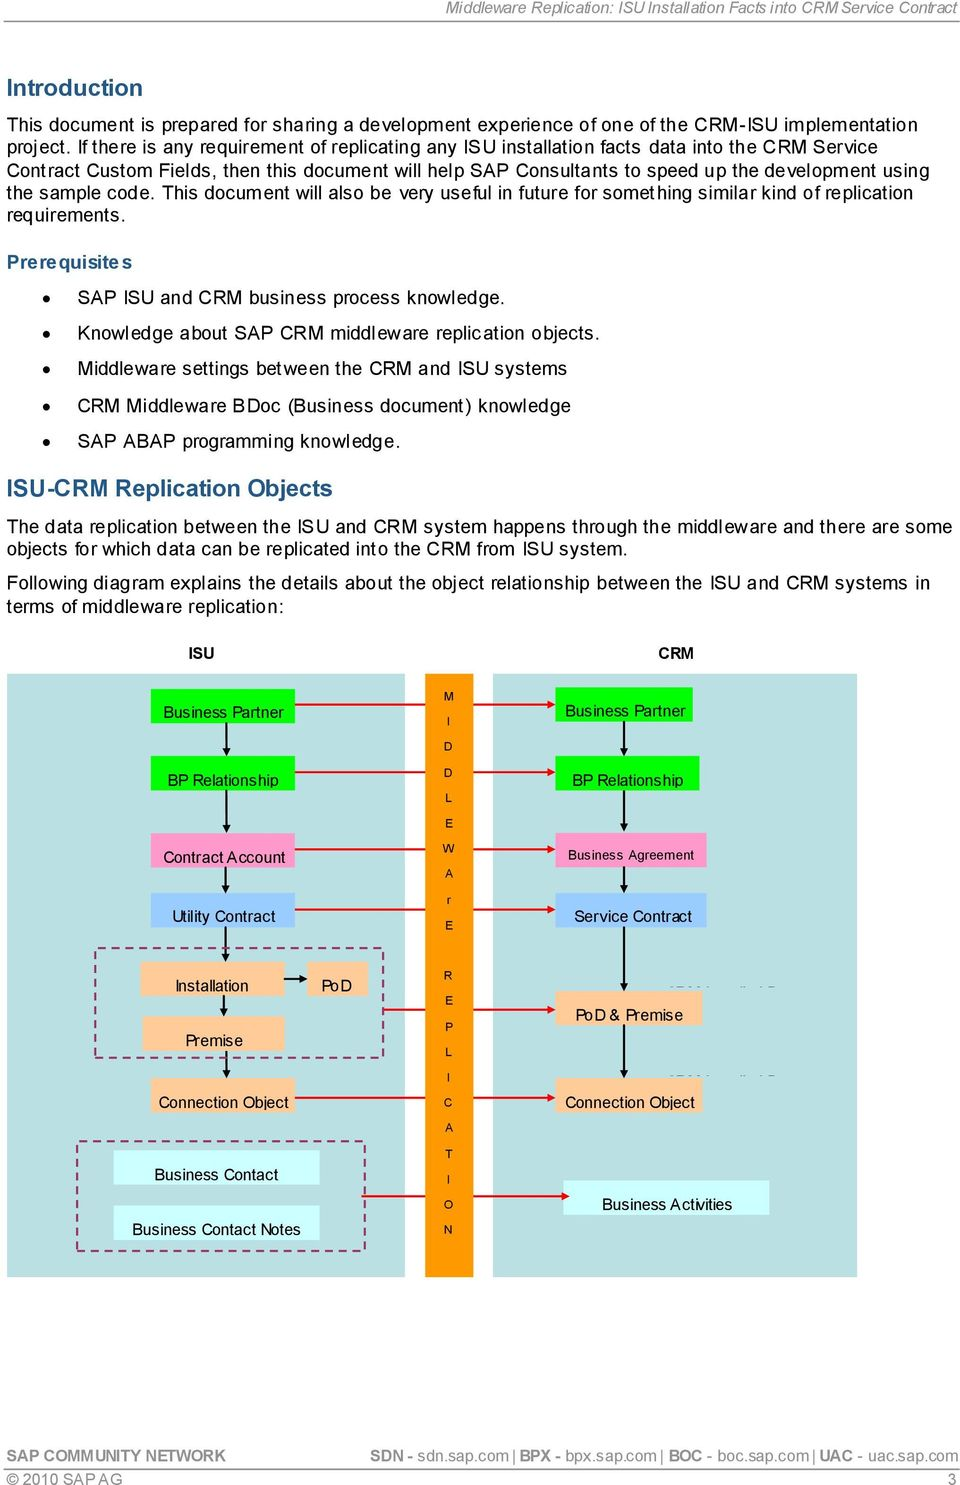 Middleware Replication: ISU Installation Facts into CRM